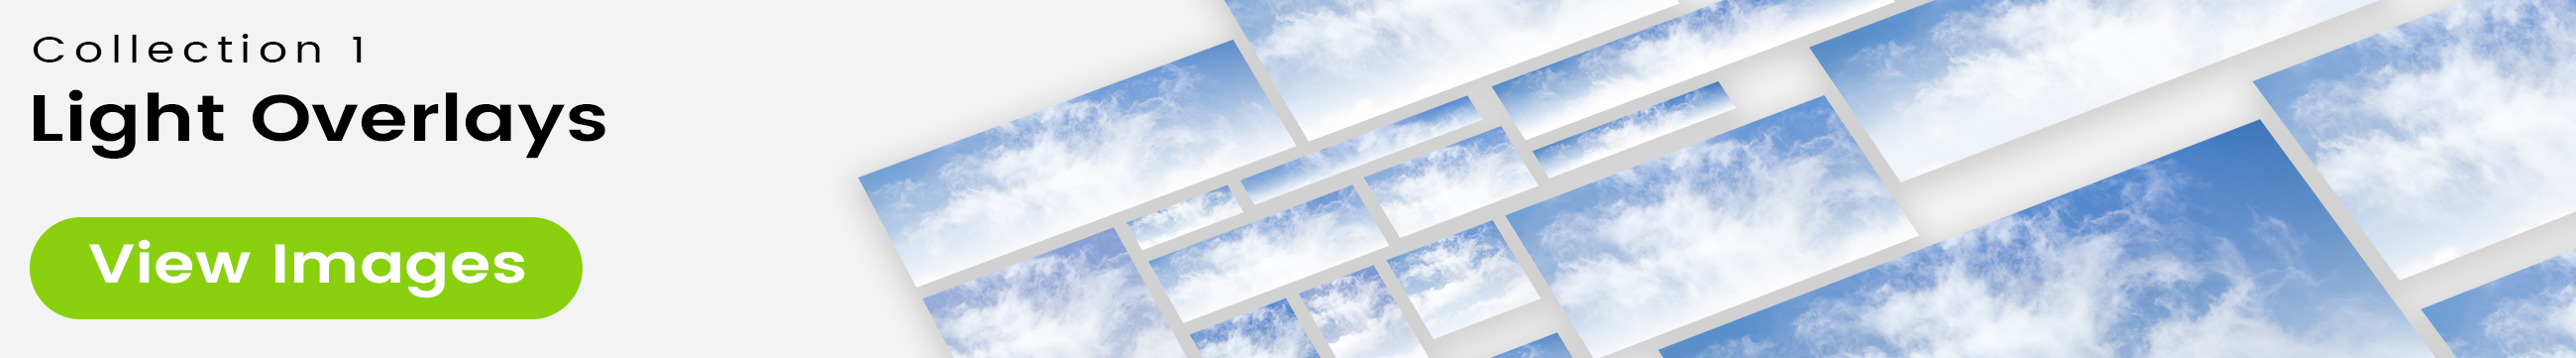 See 25 bonus images included with clouds stock image 9481. Collection 1 of 4 features a light overlay design.